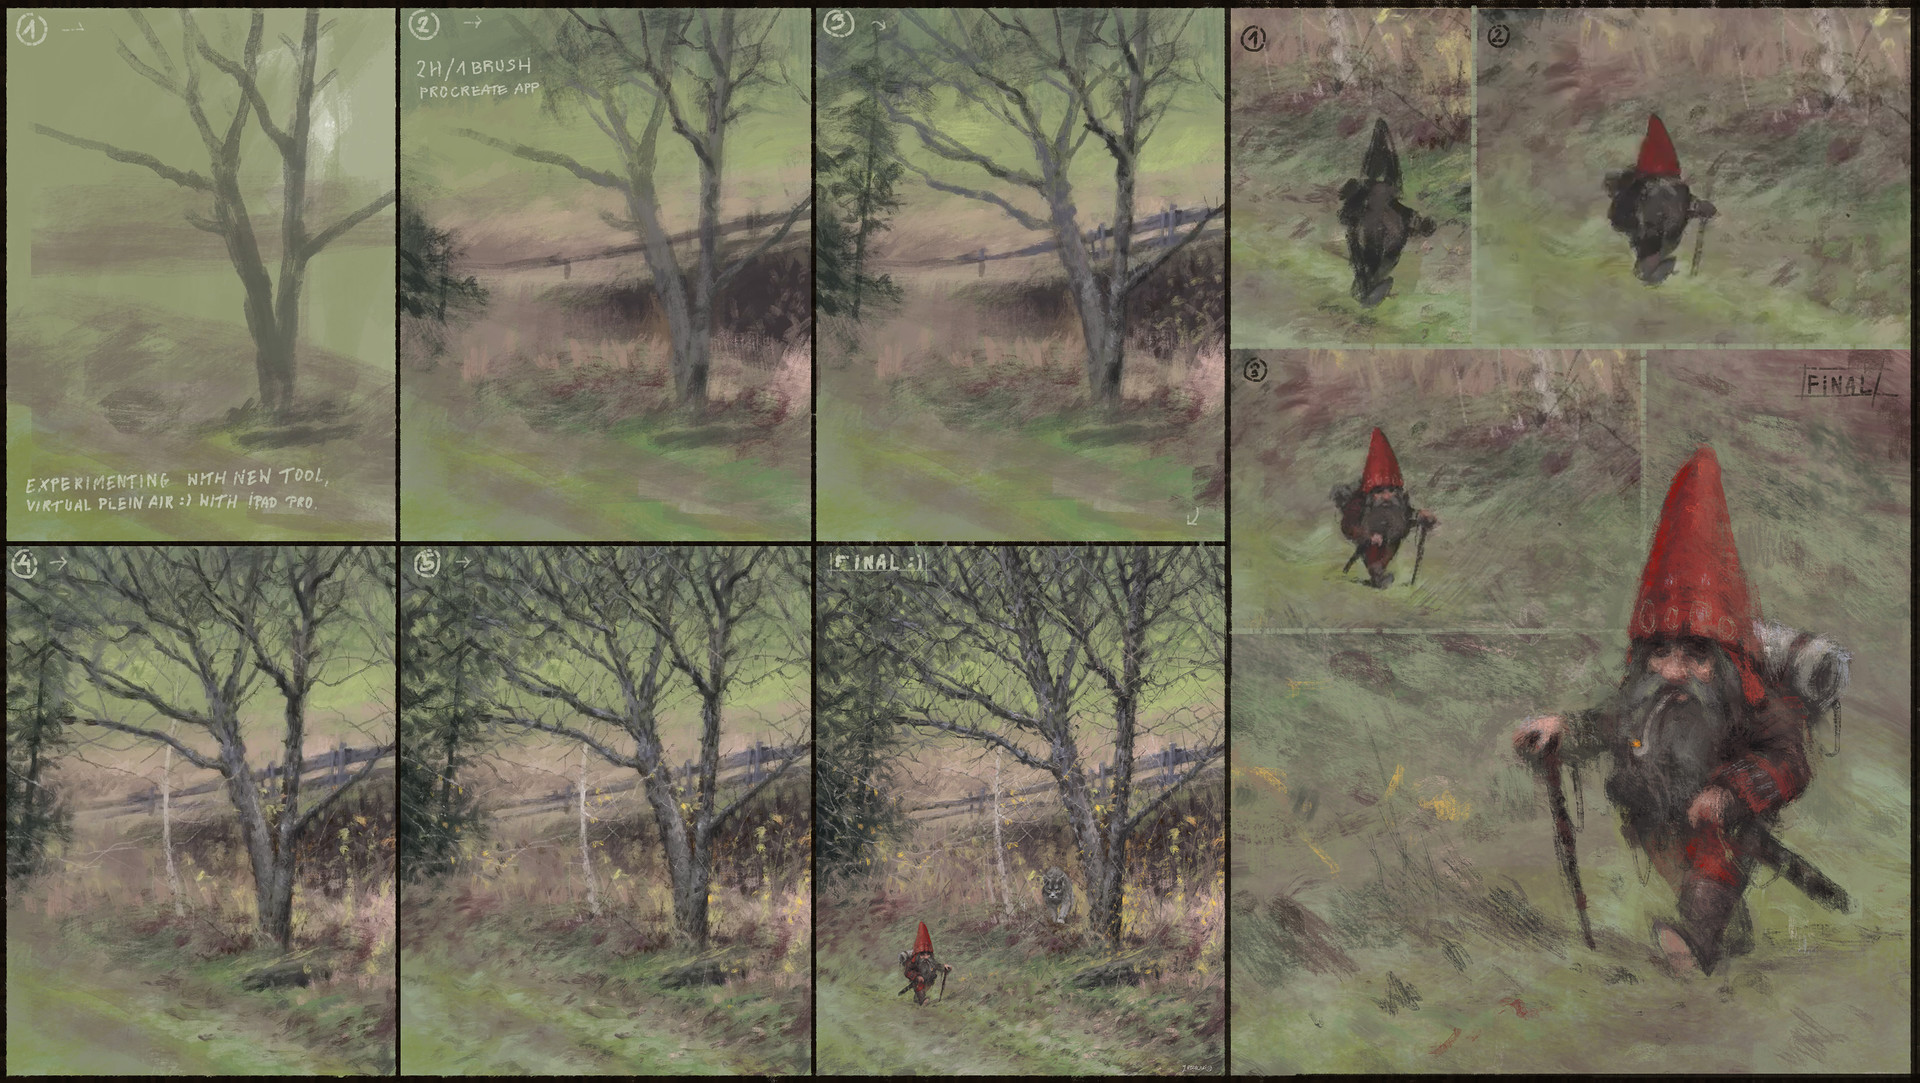 Jakub rozalski work process01